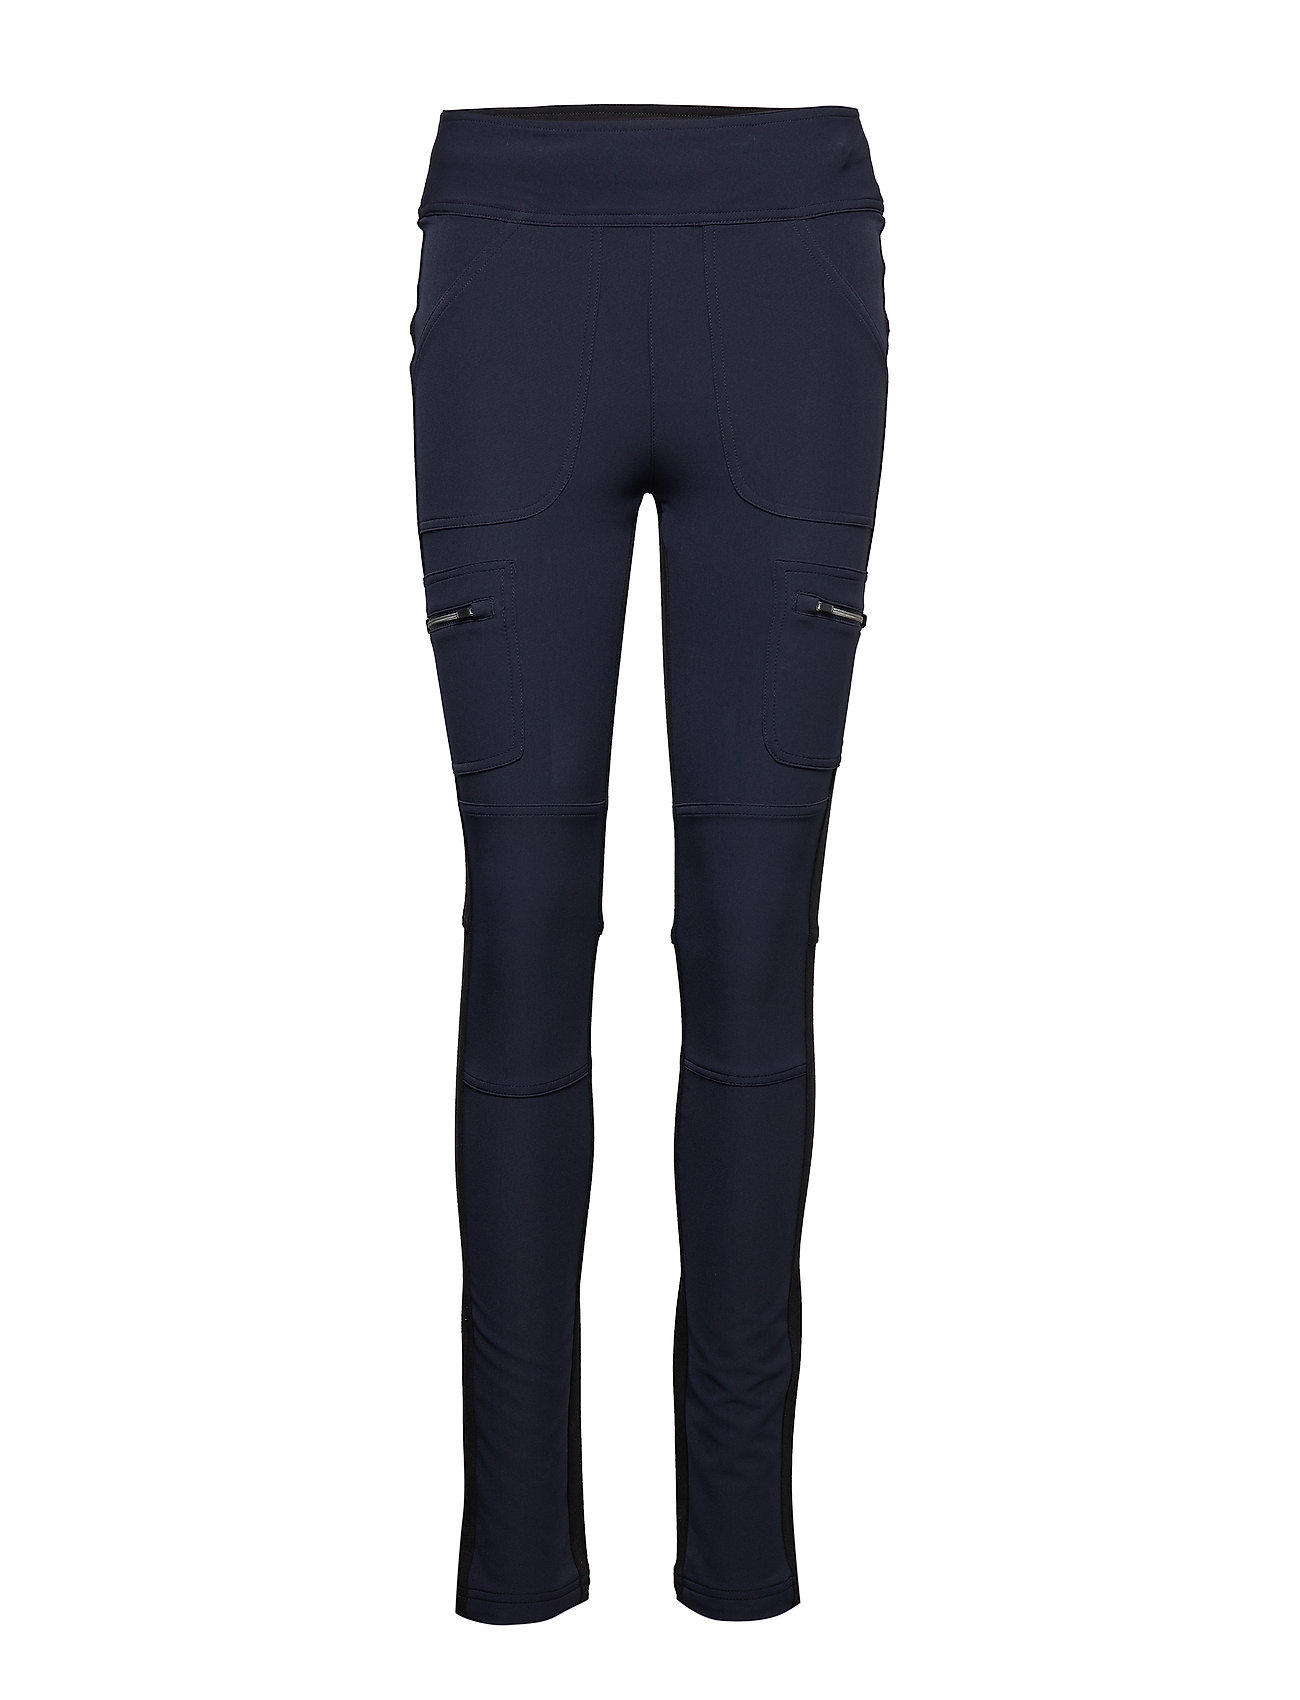 Daily Sports AVORIAZ PANTS 32 INCH - NAVY